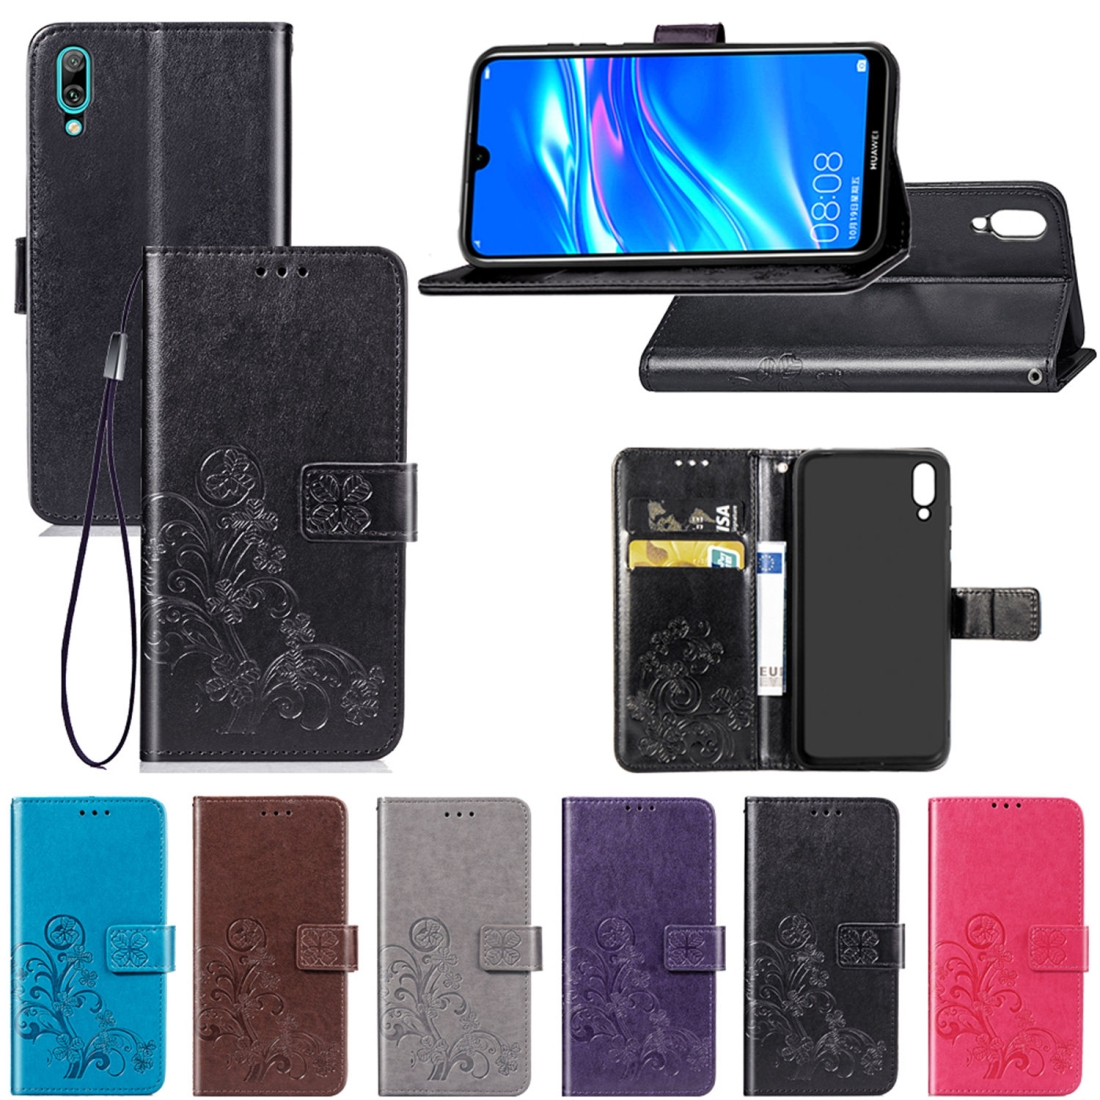 Lucky Clover Pressed Flowers Pattern Leather Case for Huawei Enjoy 9 with Holder & Card Slots & Wallet & Hand Strap (Purple)